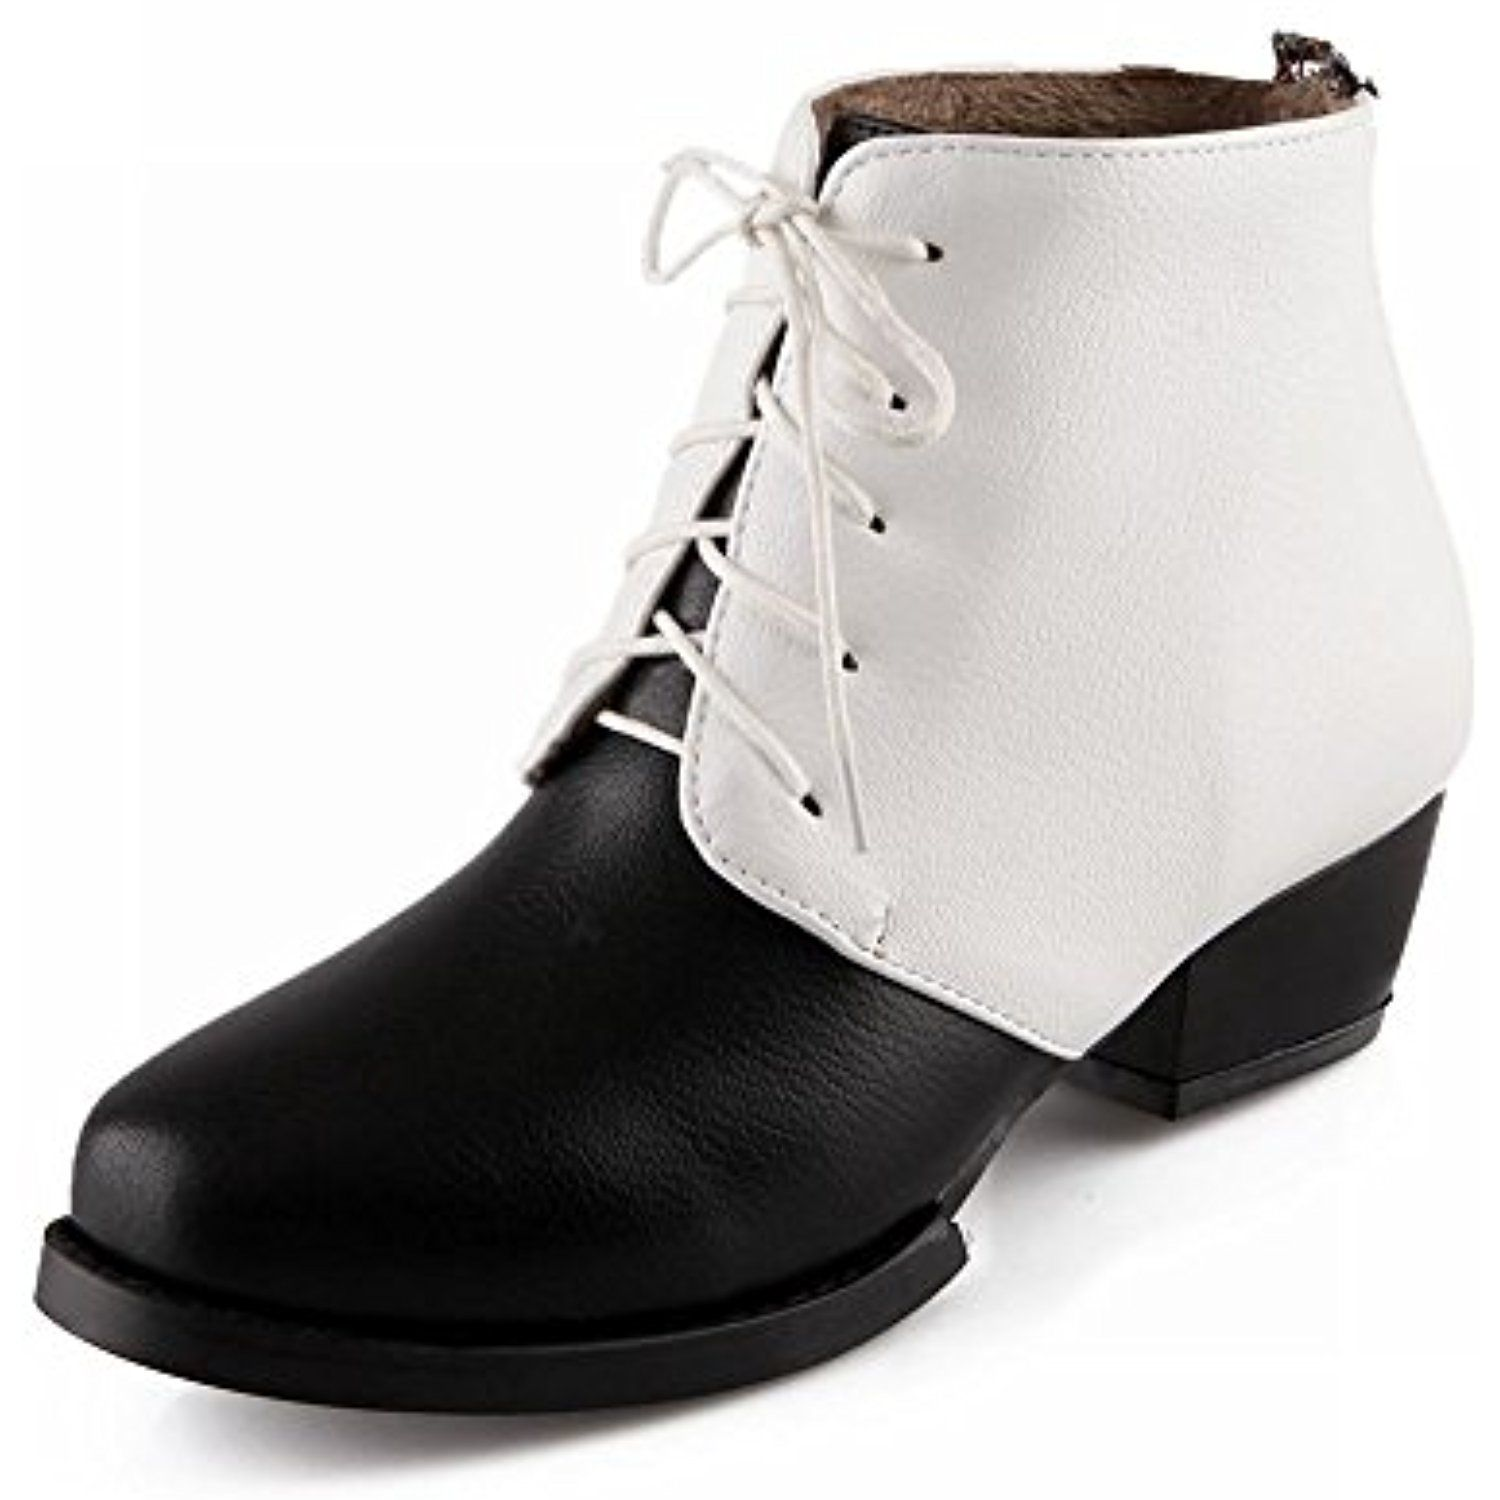 Women's Fashion Leather Ankle-high Mid-heel Chunky Boots Rhinestone-decorated Lace-up Mixtz Boots